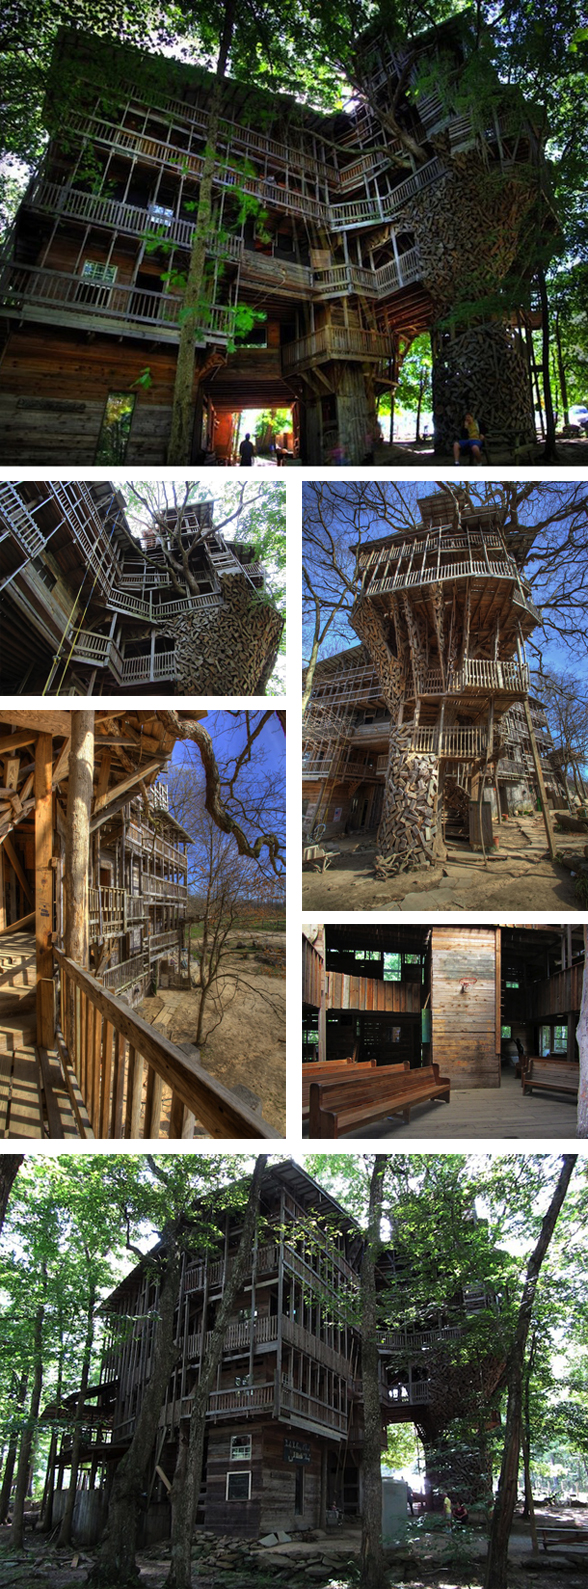 WorldsLargestTreeHouse1Sutherland